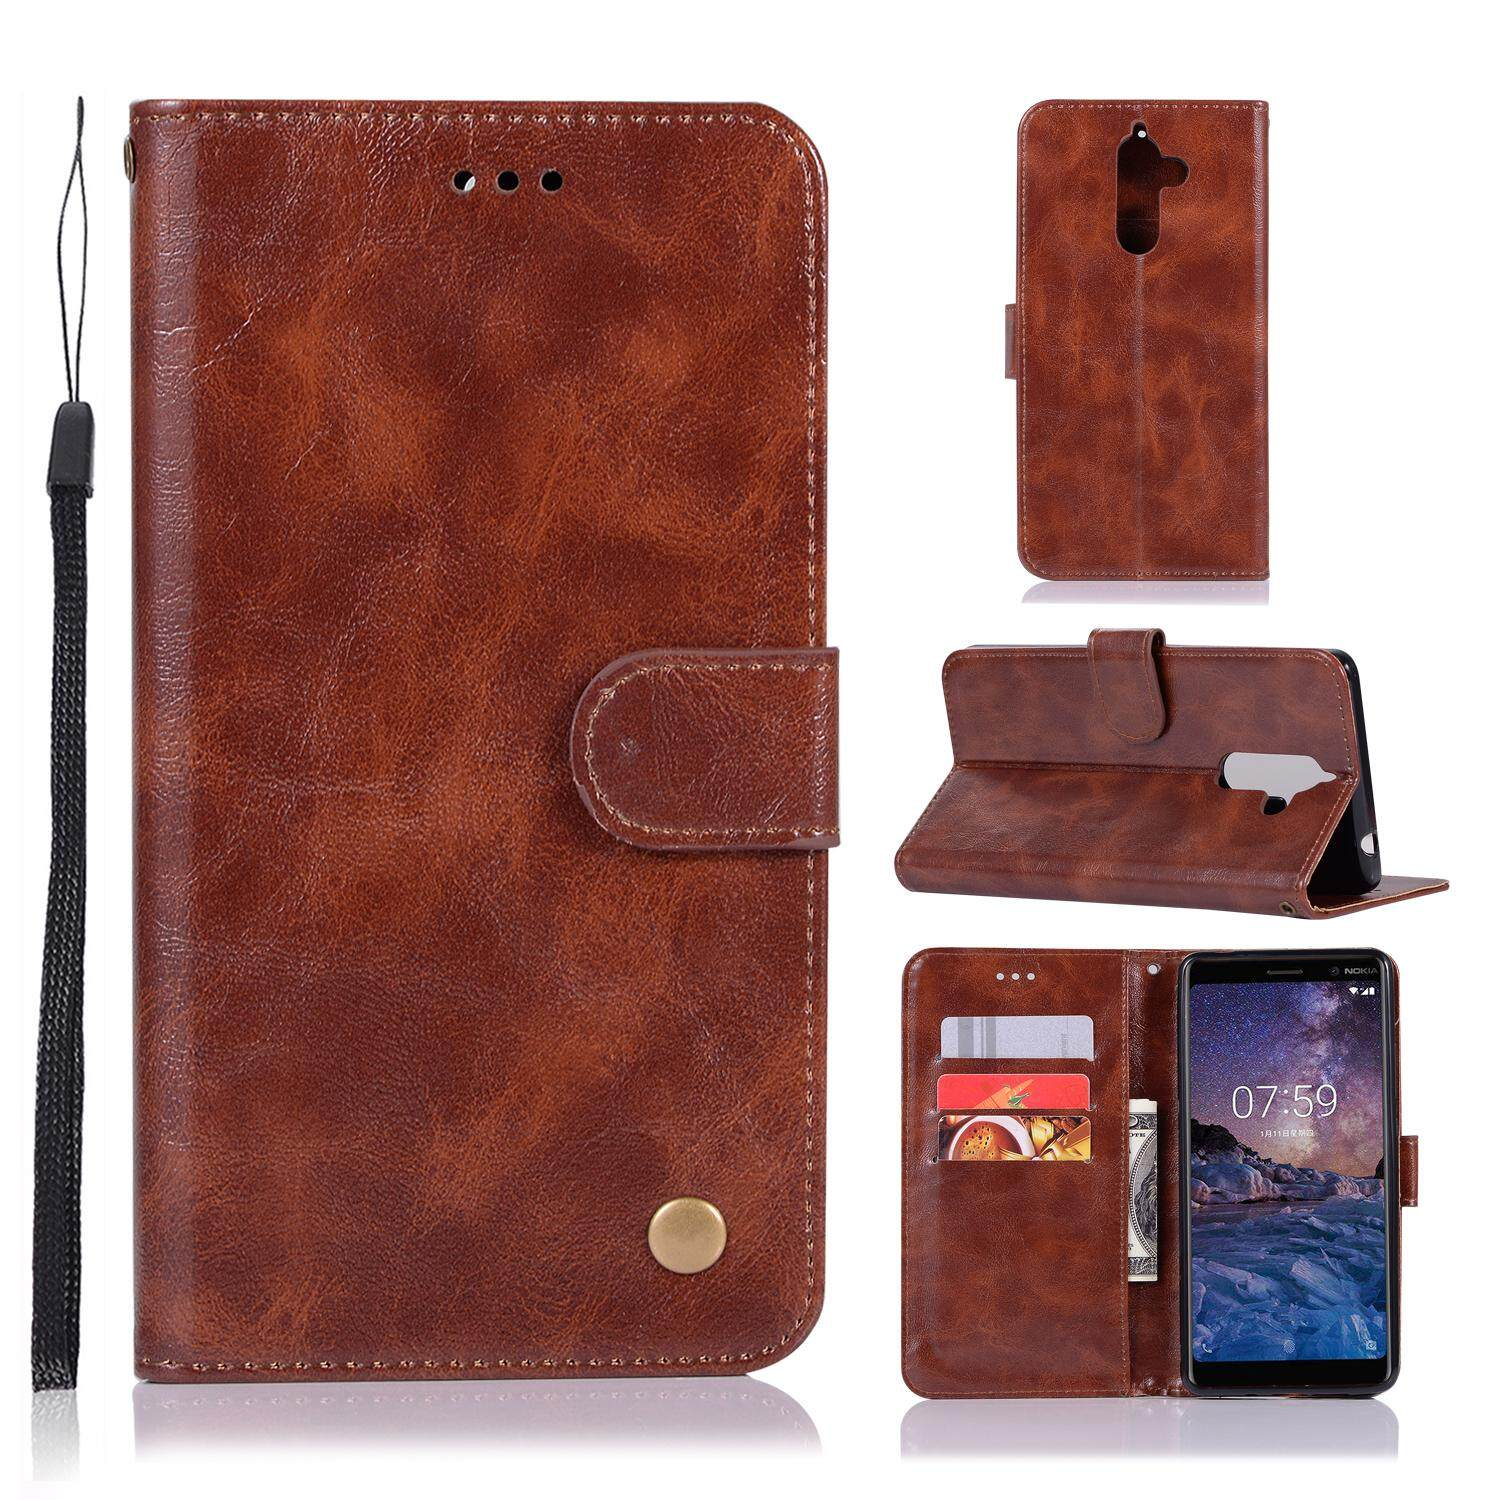 Casing For Nokia 7 Plus,reto Leather Wallet Case Magnetic Double Card Holder Flip Cover By Life Goes On.